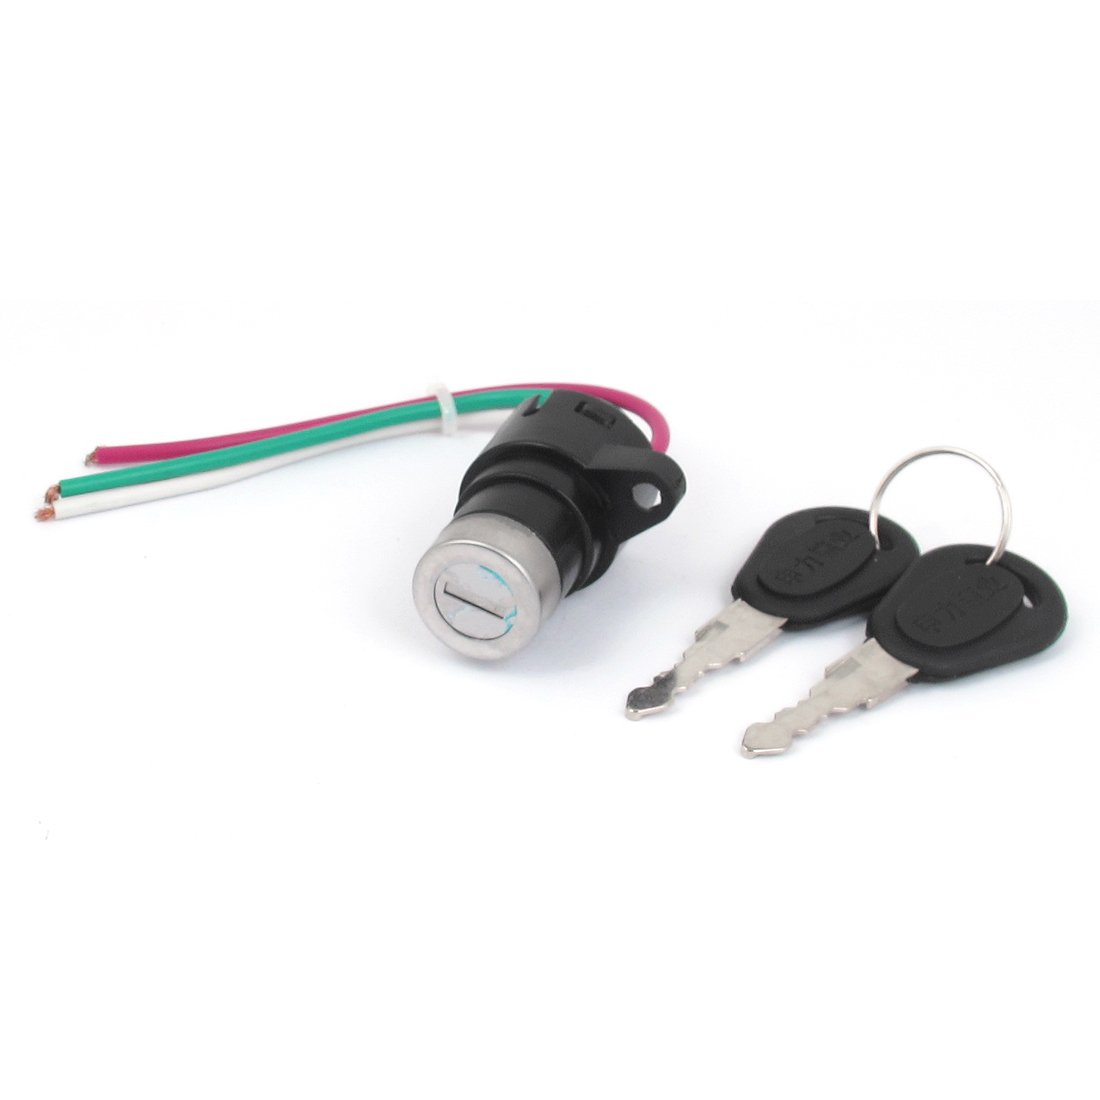 sourcingmap Ignition Start 3-Wire Motorcycle Motorbike Electric Key Switch Lock a15081800ux0282